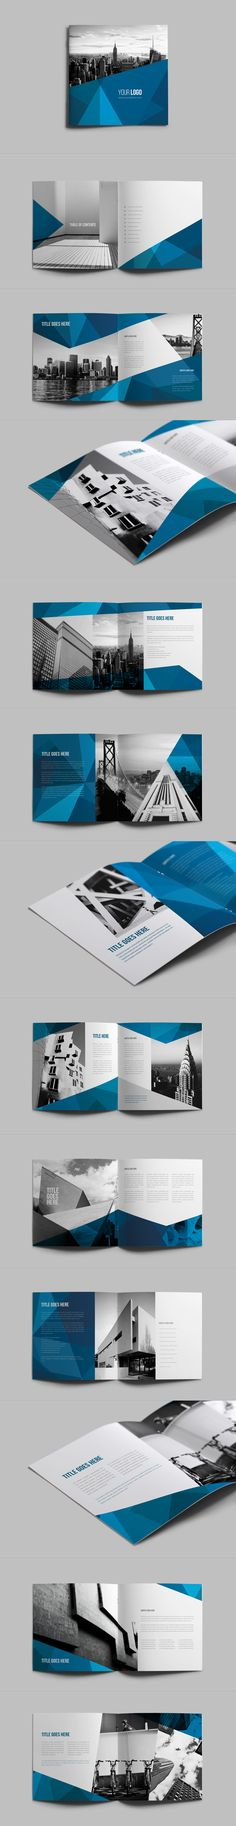 Square Abstract Architecture Brochure. Download here: http://graphicriver.net/item/square-abstract-architecture-brochure/9204539?ref=abradesign #brochure #design